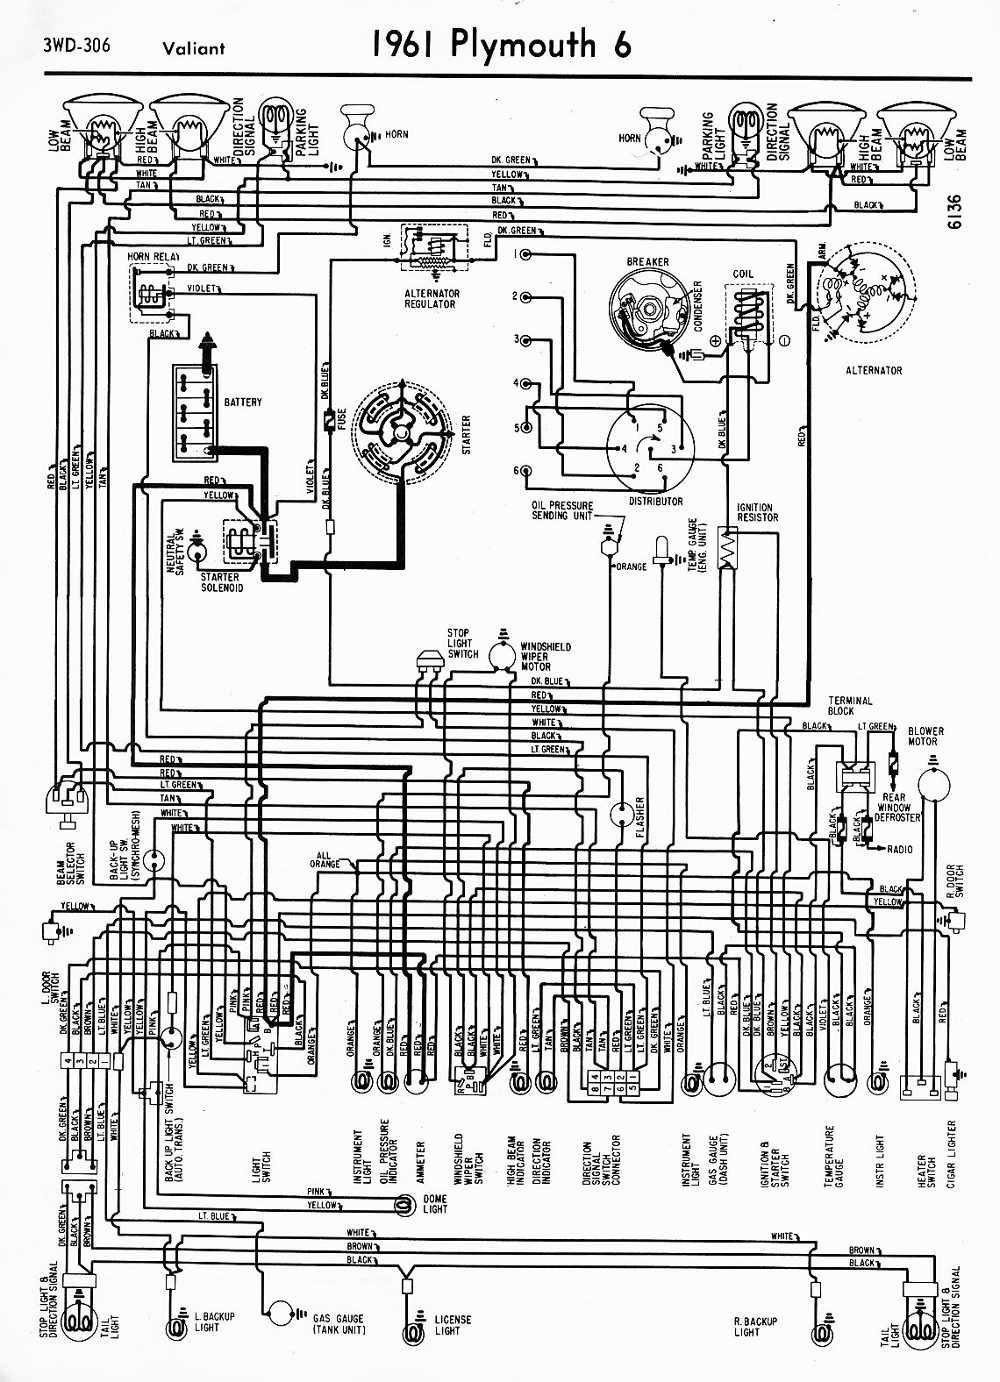 wiring diagrams of 1961 plymouth 6 valiant?t\\\=1508746019 1955 plymouth wiring diagram 1955 wiring diagrams instruction 1970 dodge coronet wiring diagram at bakdesigns.co